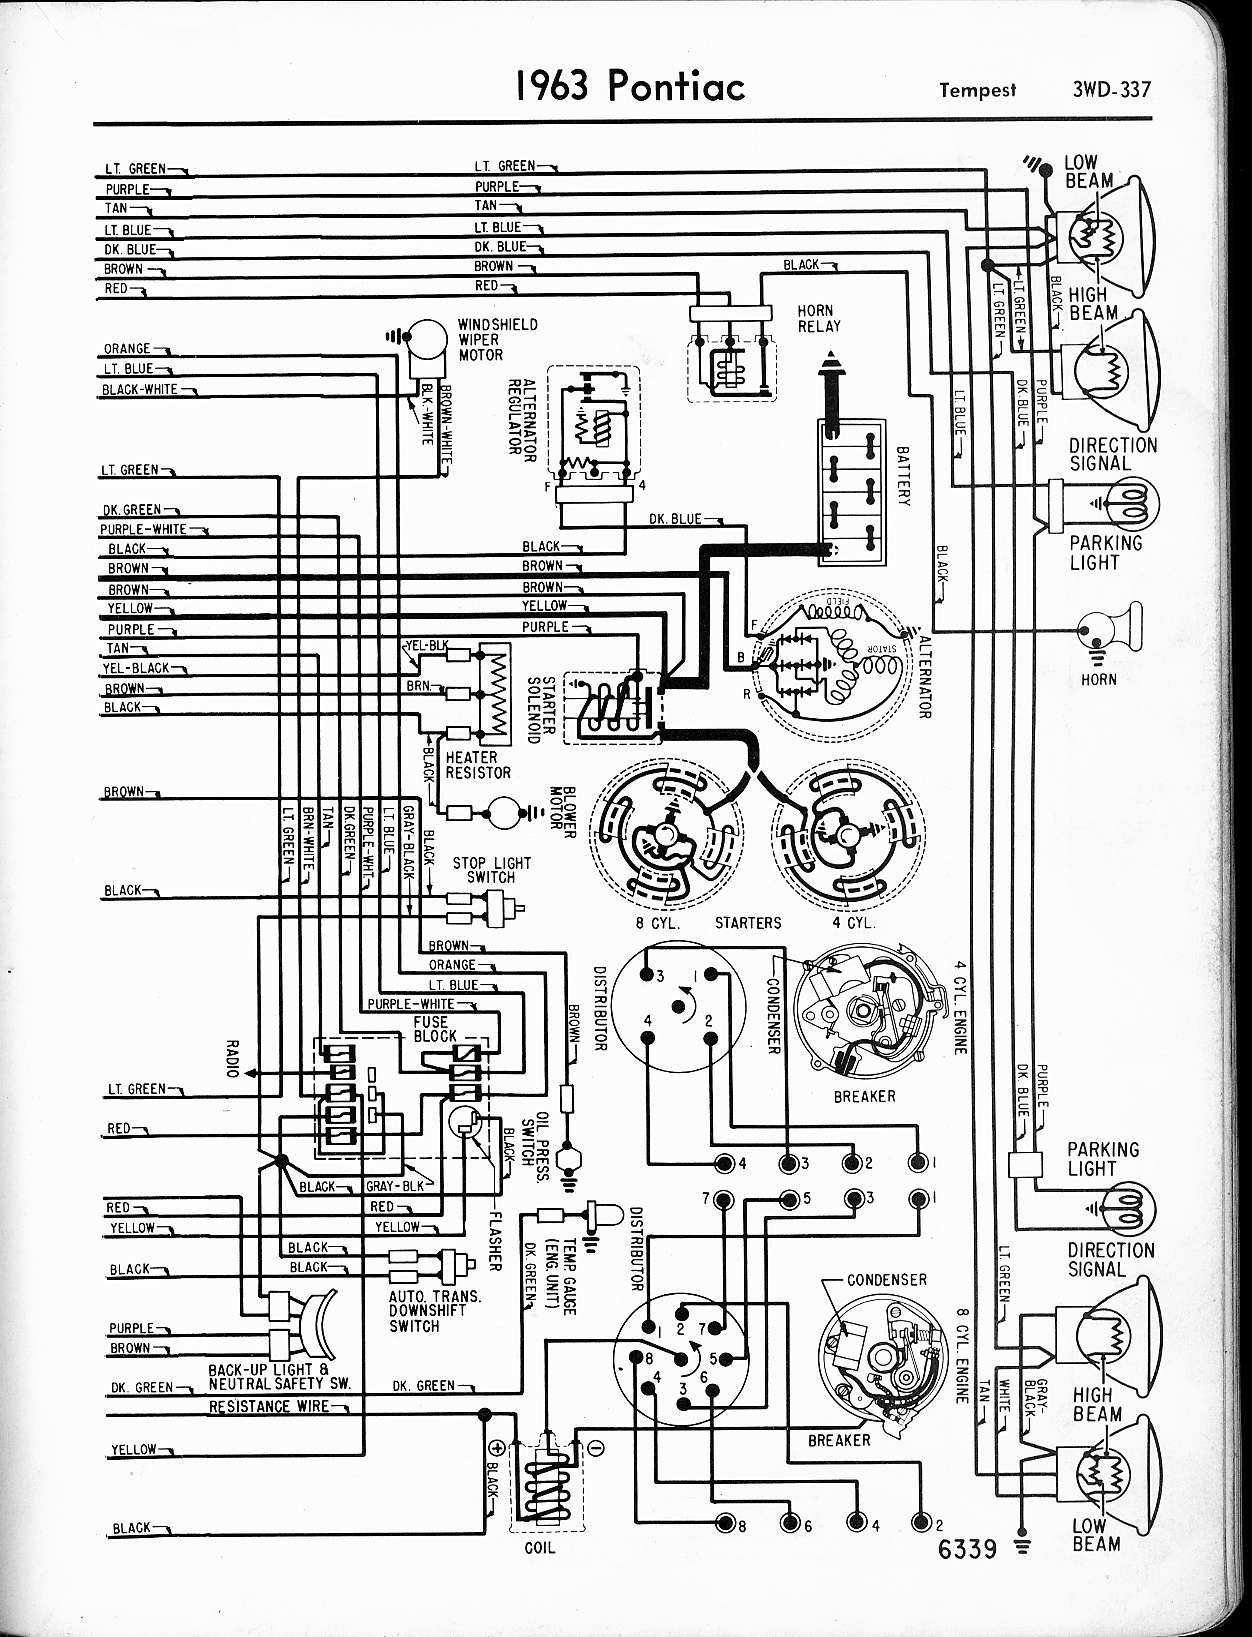 Wallace racing wiring diagrams rh wallaceracing 1965 pontiac lemans wiring diagram wiring diagram 1990 pontiac